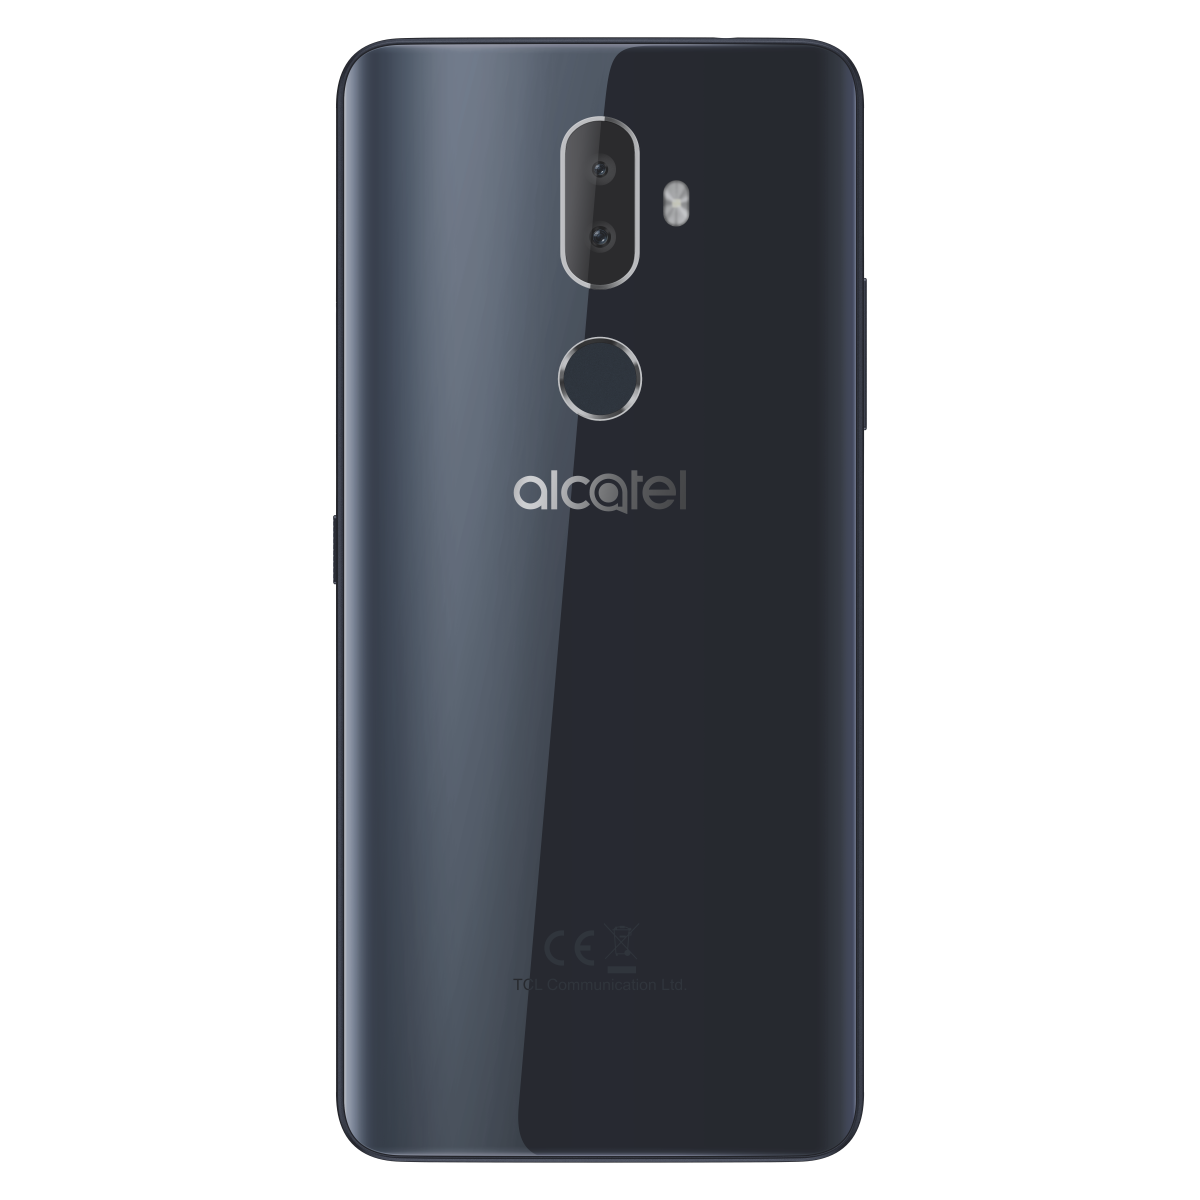 Alcatel 3V is a budget 18:9 phone with Android Oreo for $149